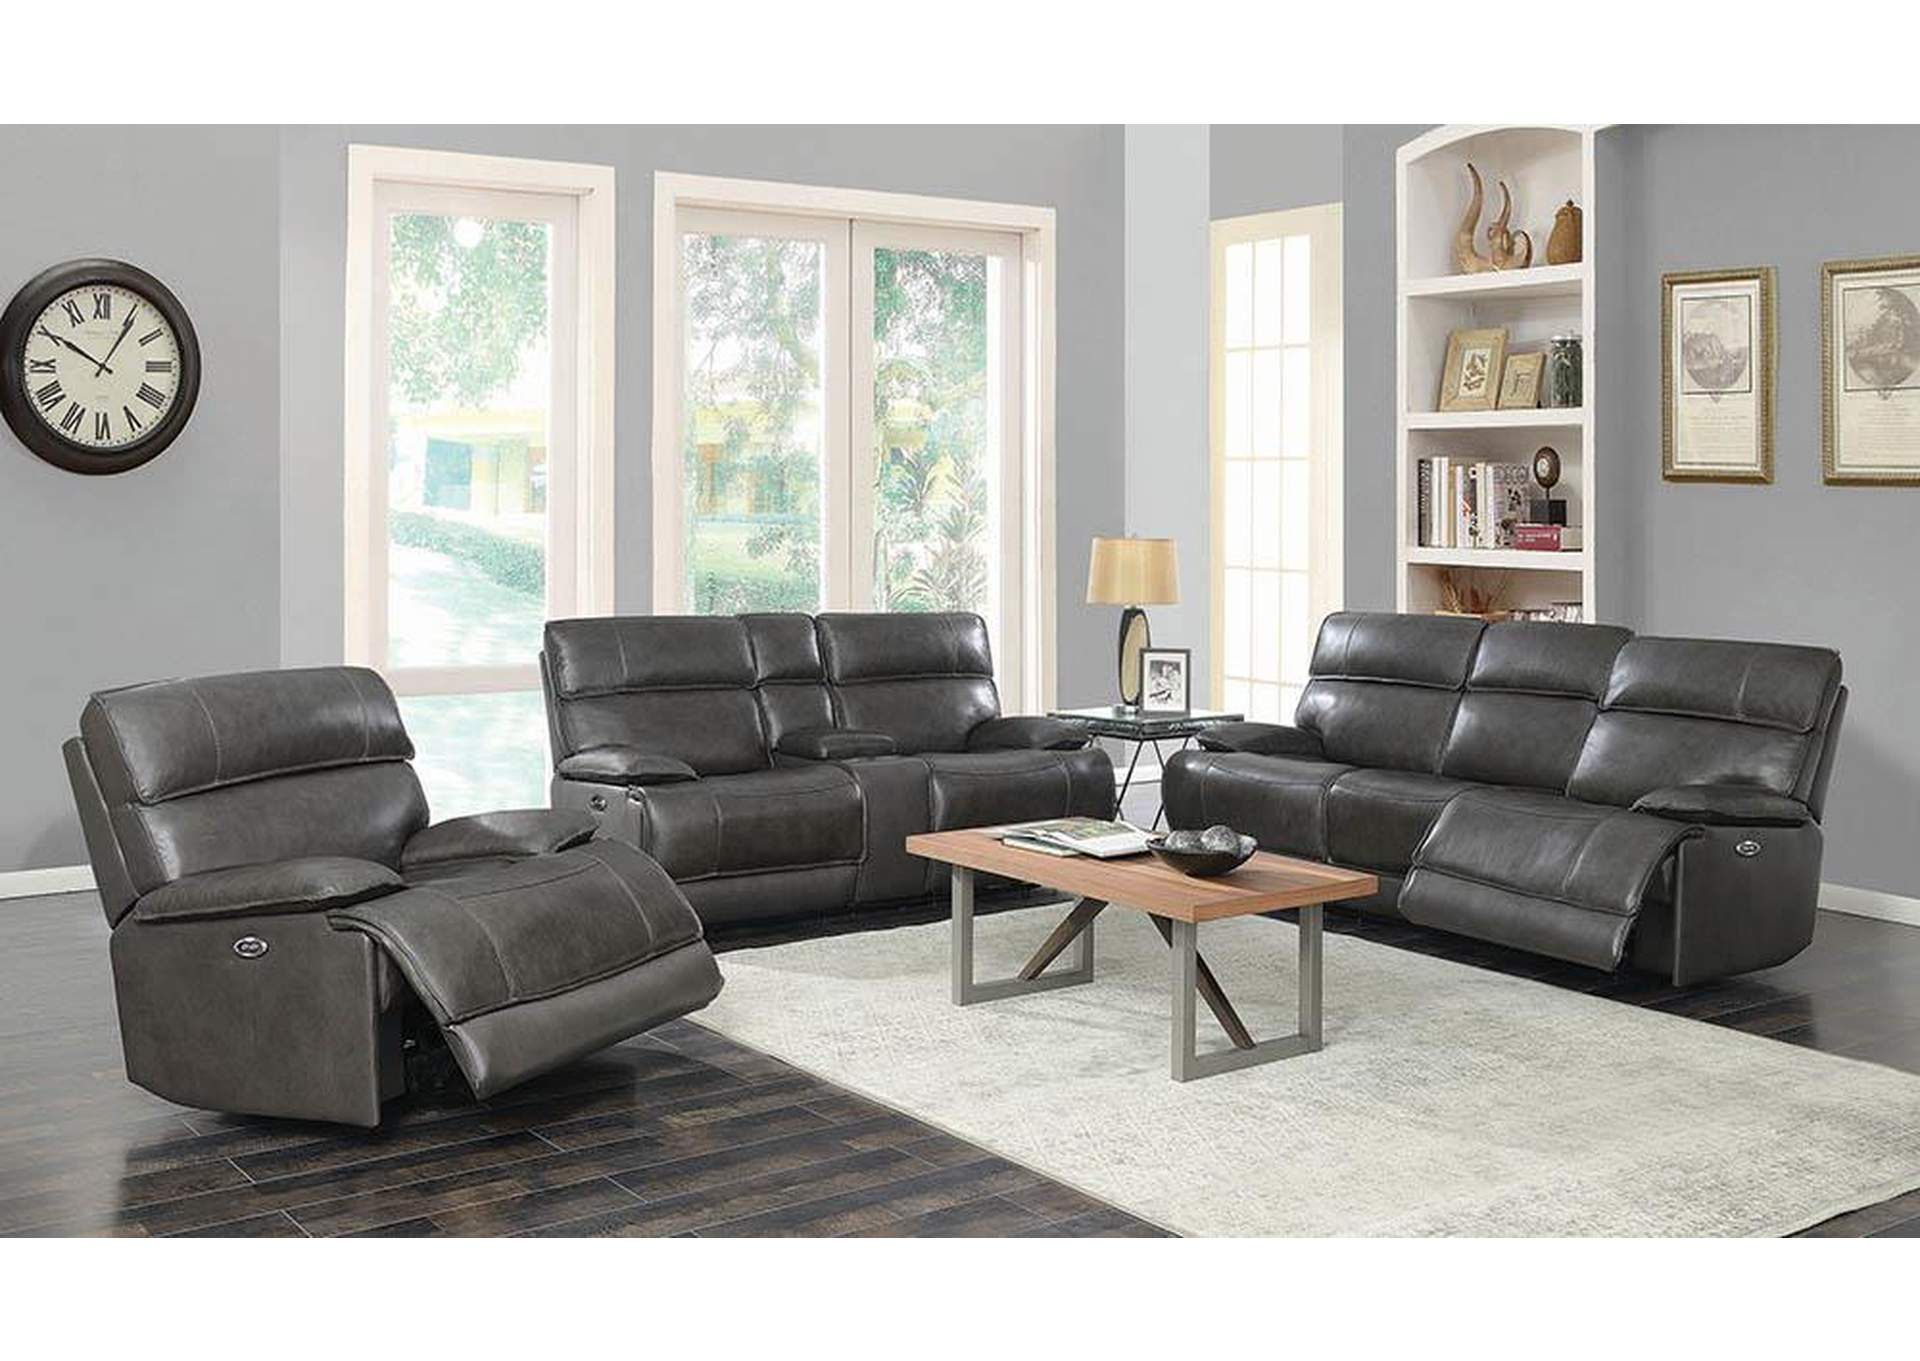 Pleasant Furniture Deals Usa Stanford Charcoal Power Reclining Bralicious Painted Fabric Chair Ideas Braliciousco